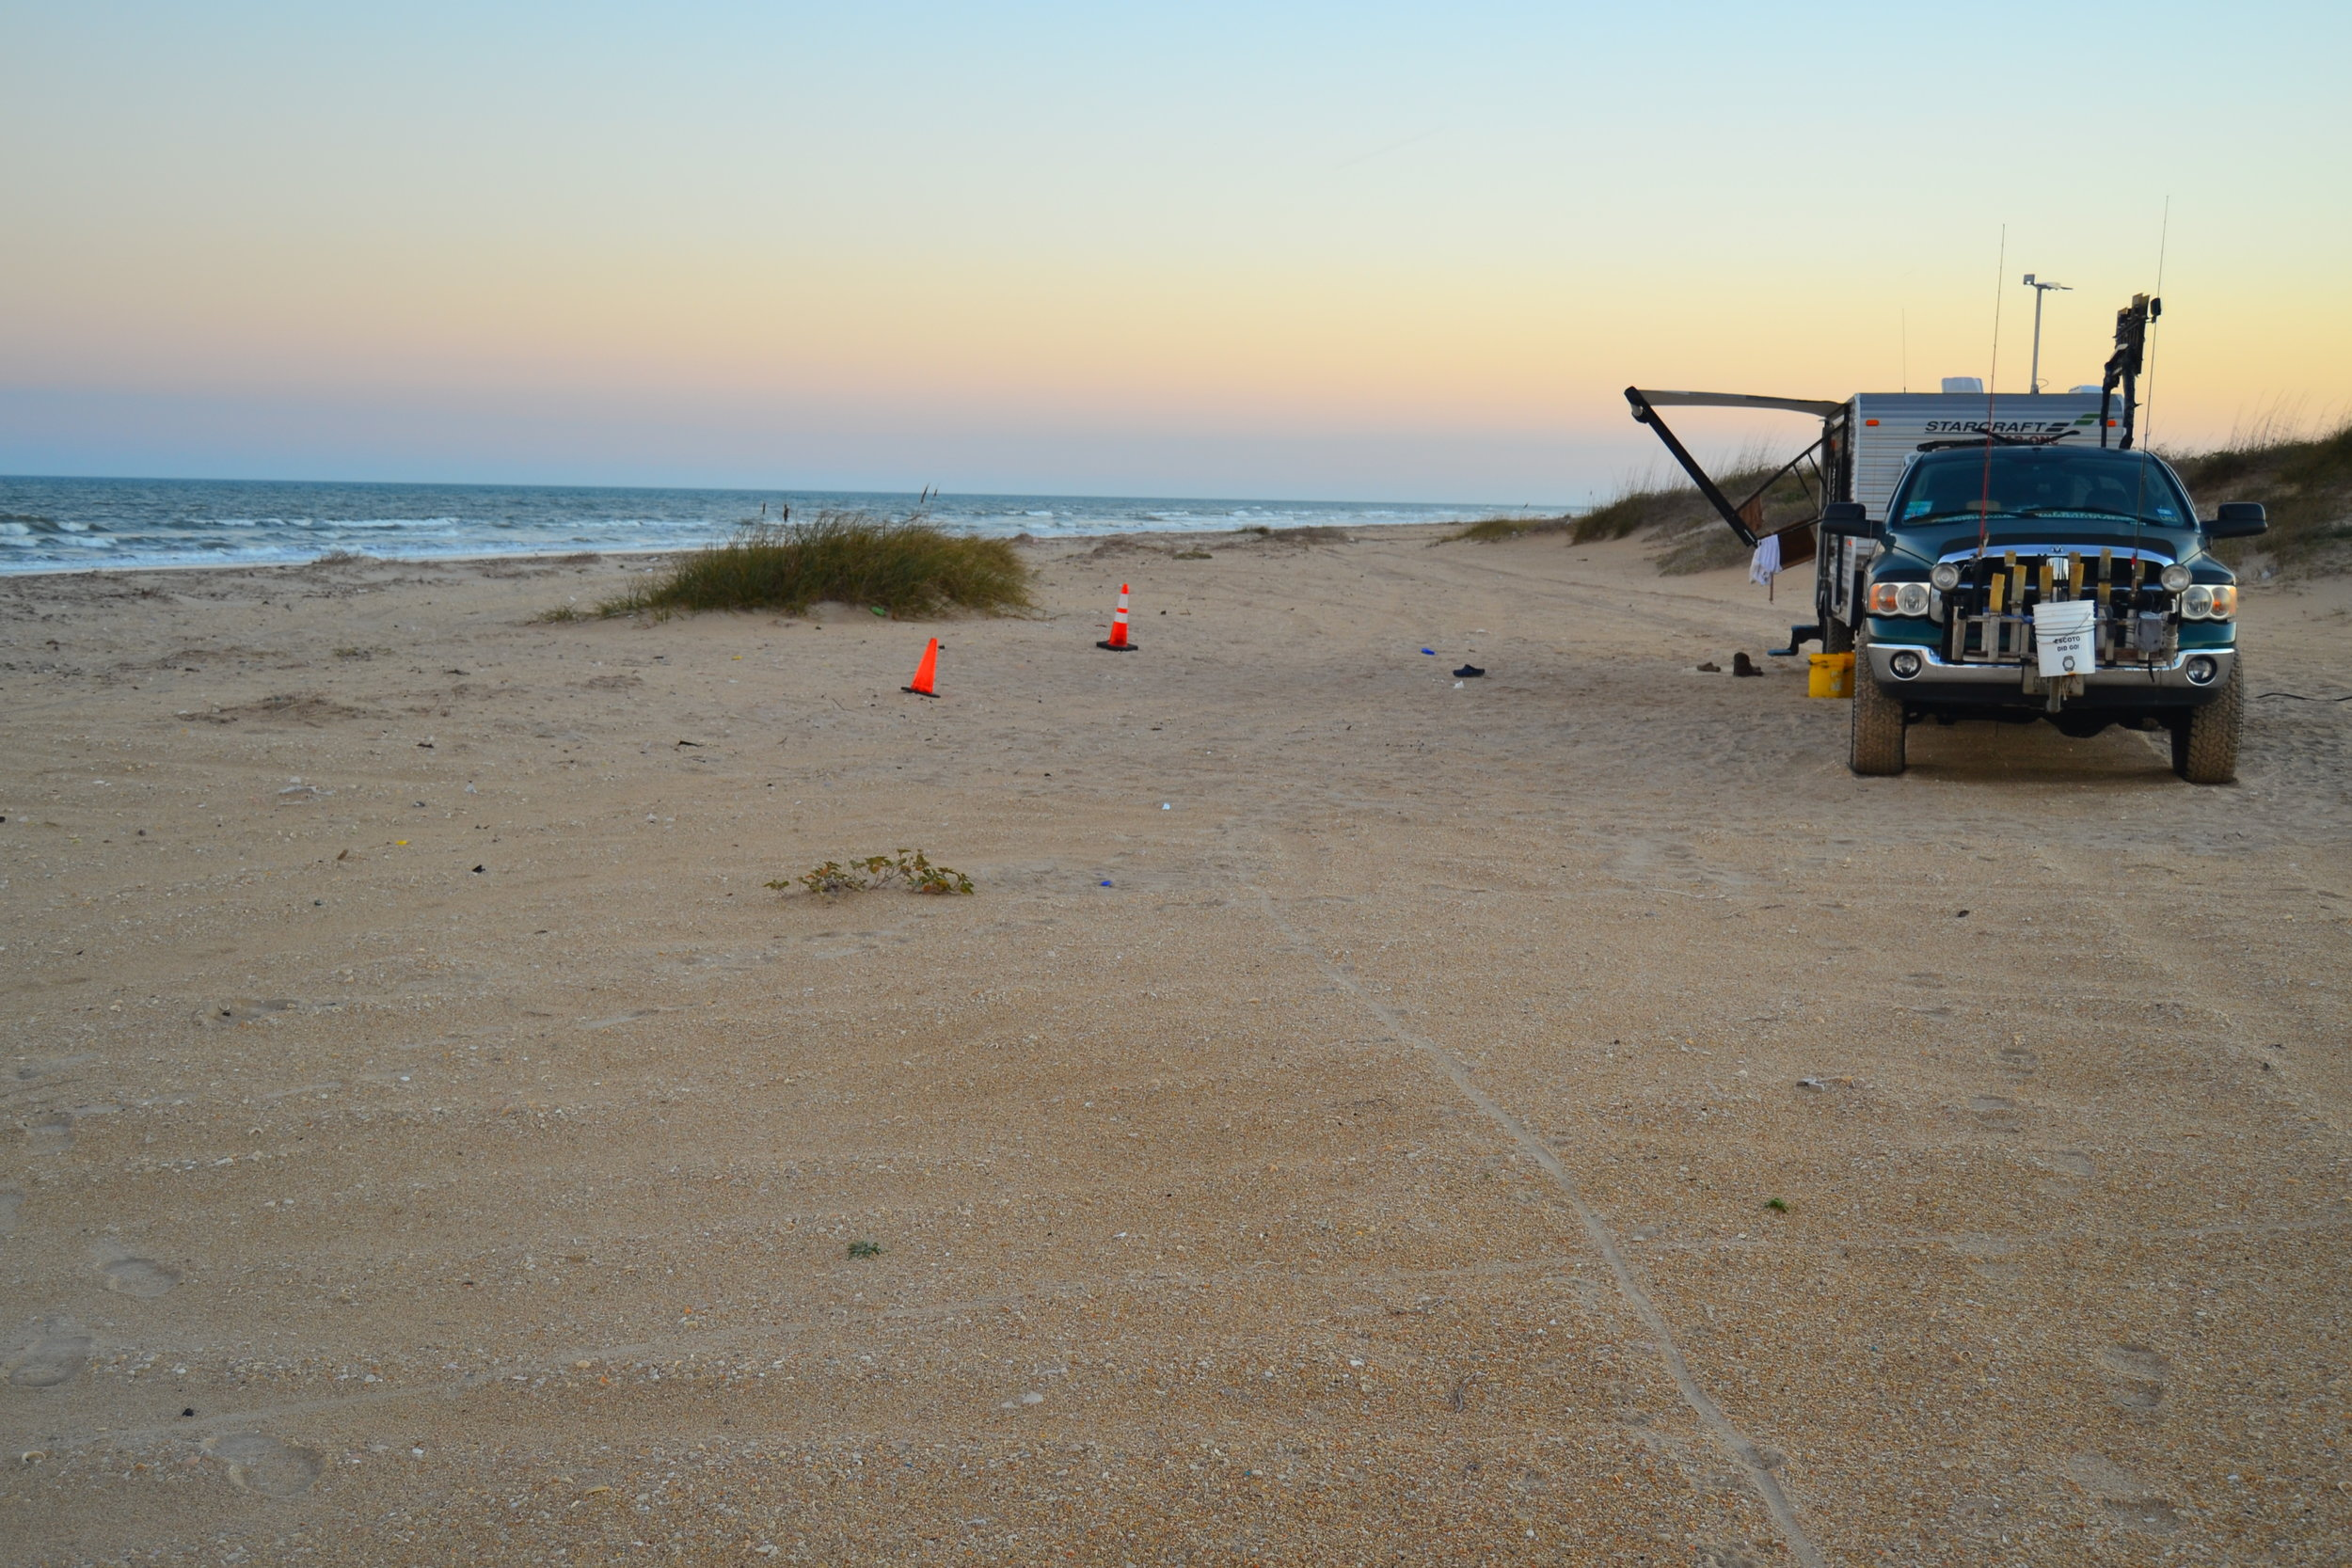 RV camping in the High Banks portion of South Beach